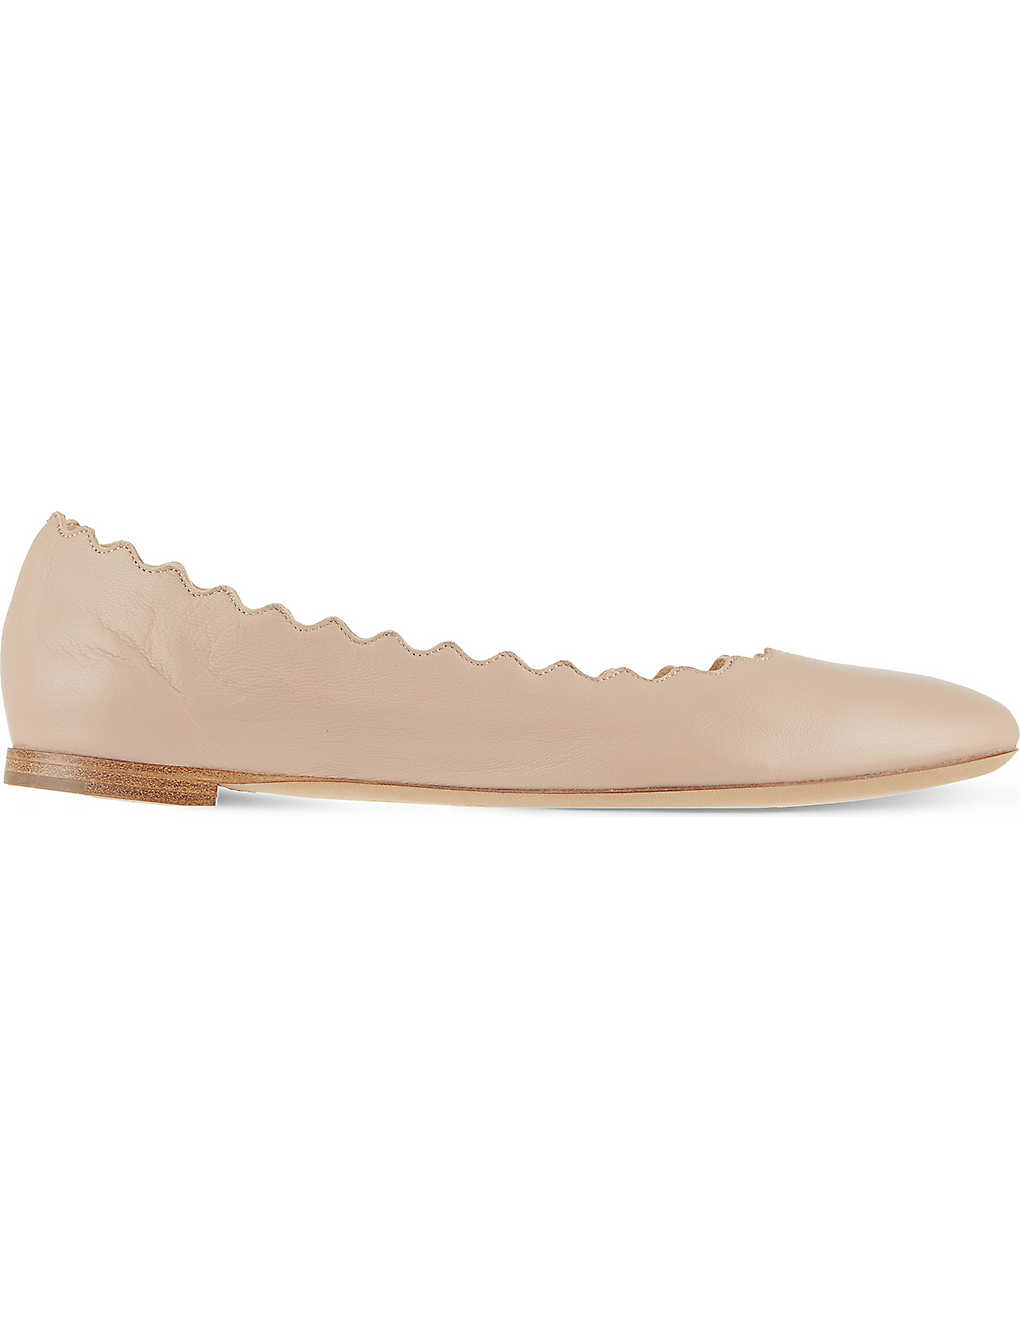 CHLOE: Scallop leather ballet flats